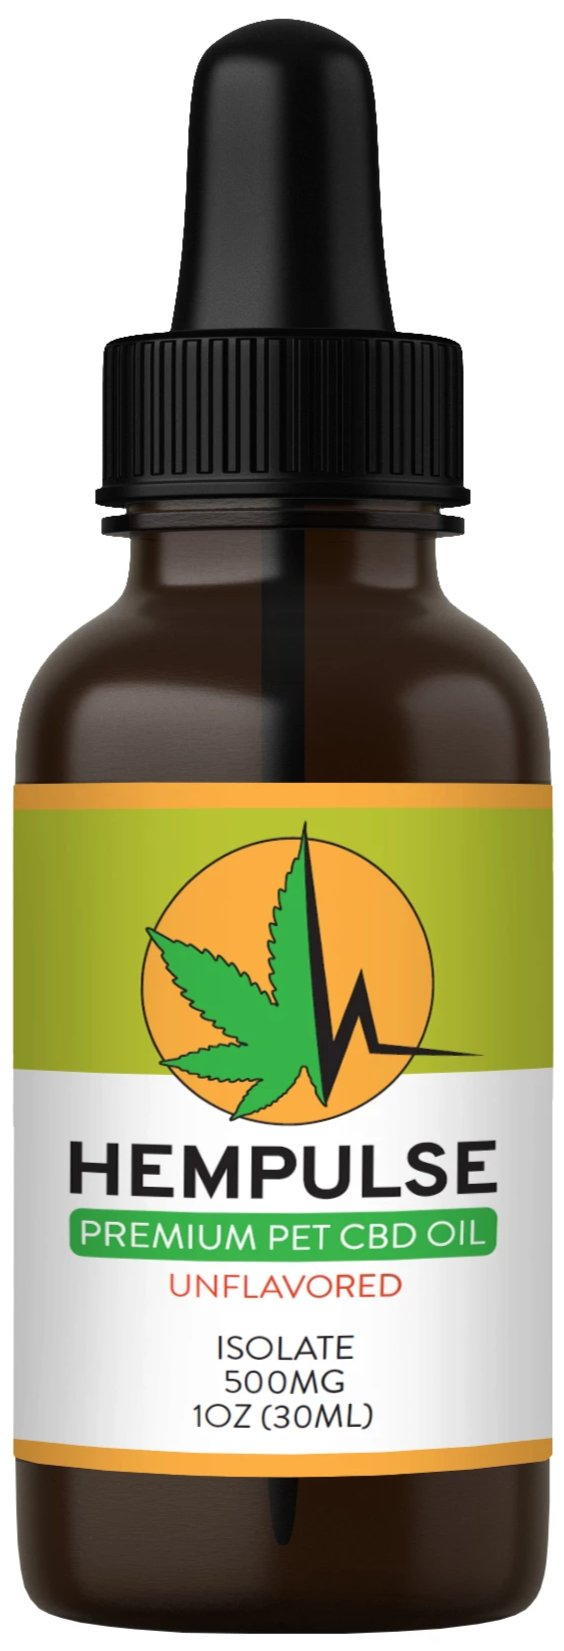 Hempulse premium 500mg isolate CBD oil for relief of pain, inflammation, stress, and anxiety in larger pets